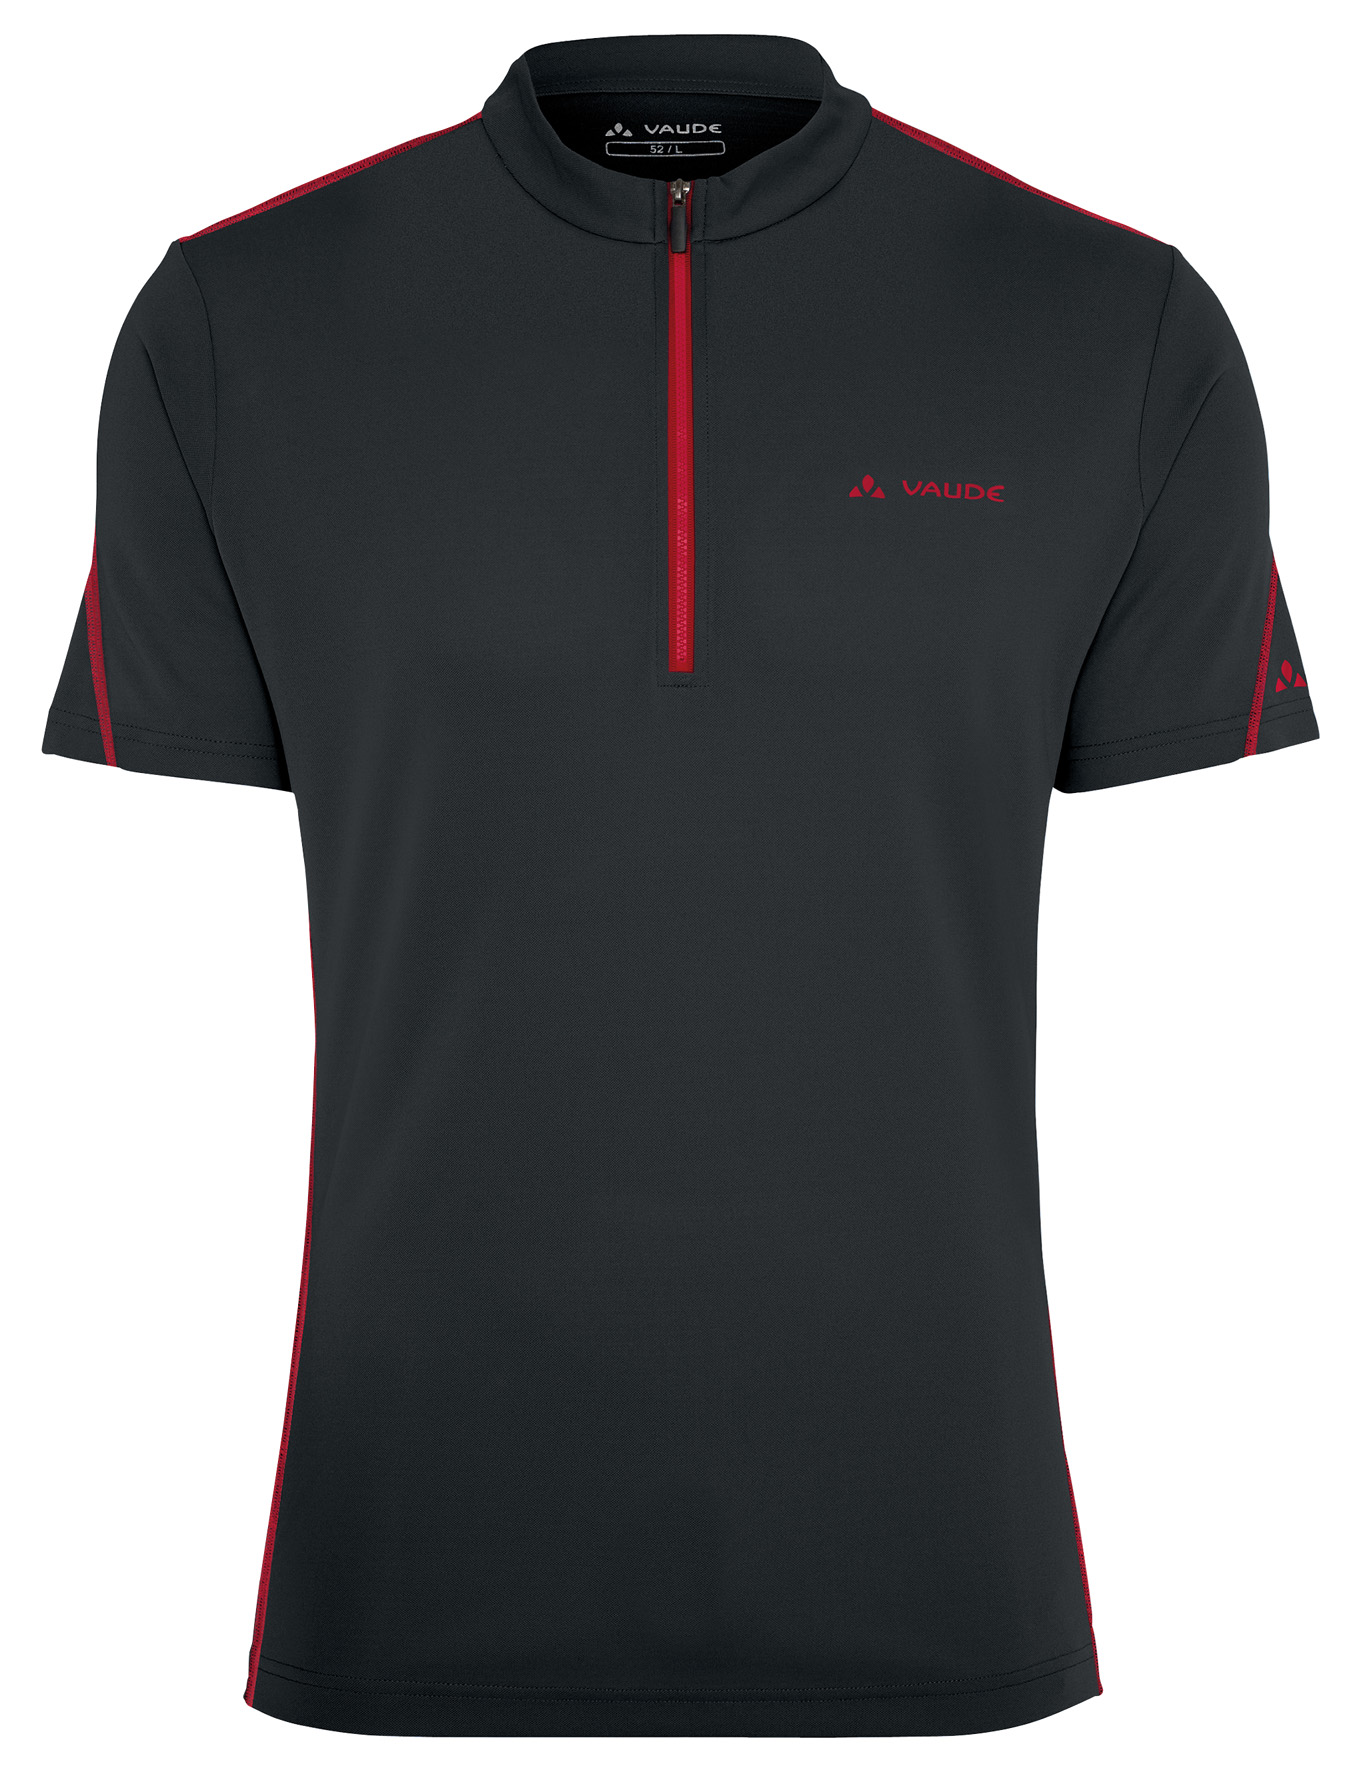 VAUDE Men´s Tamaro Shirt black/red Größe XL - schneider-sports